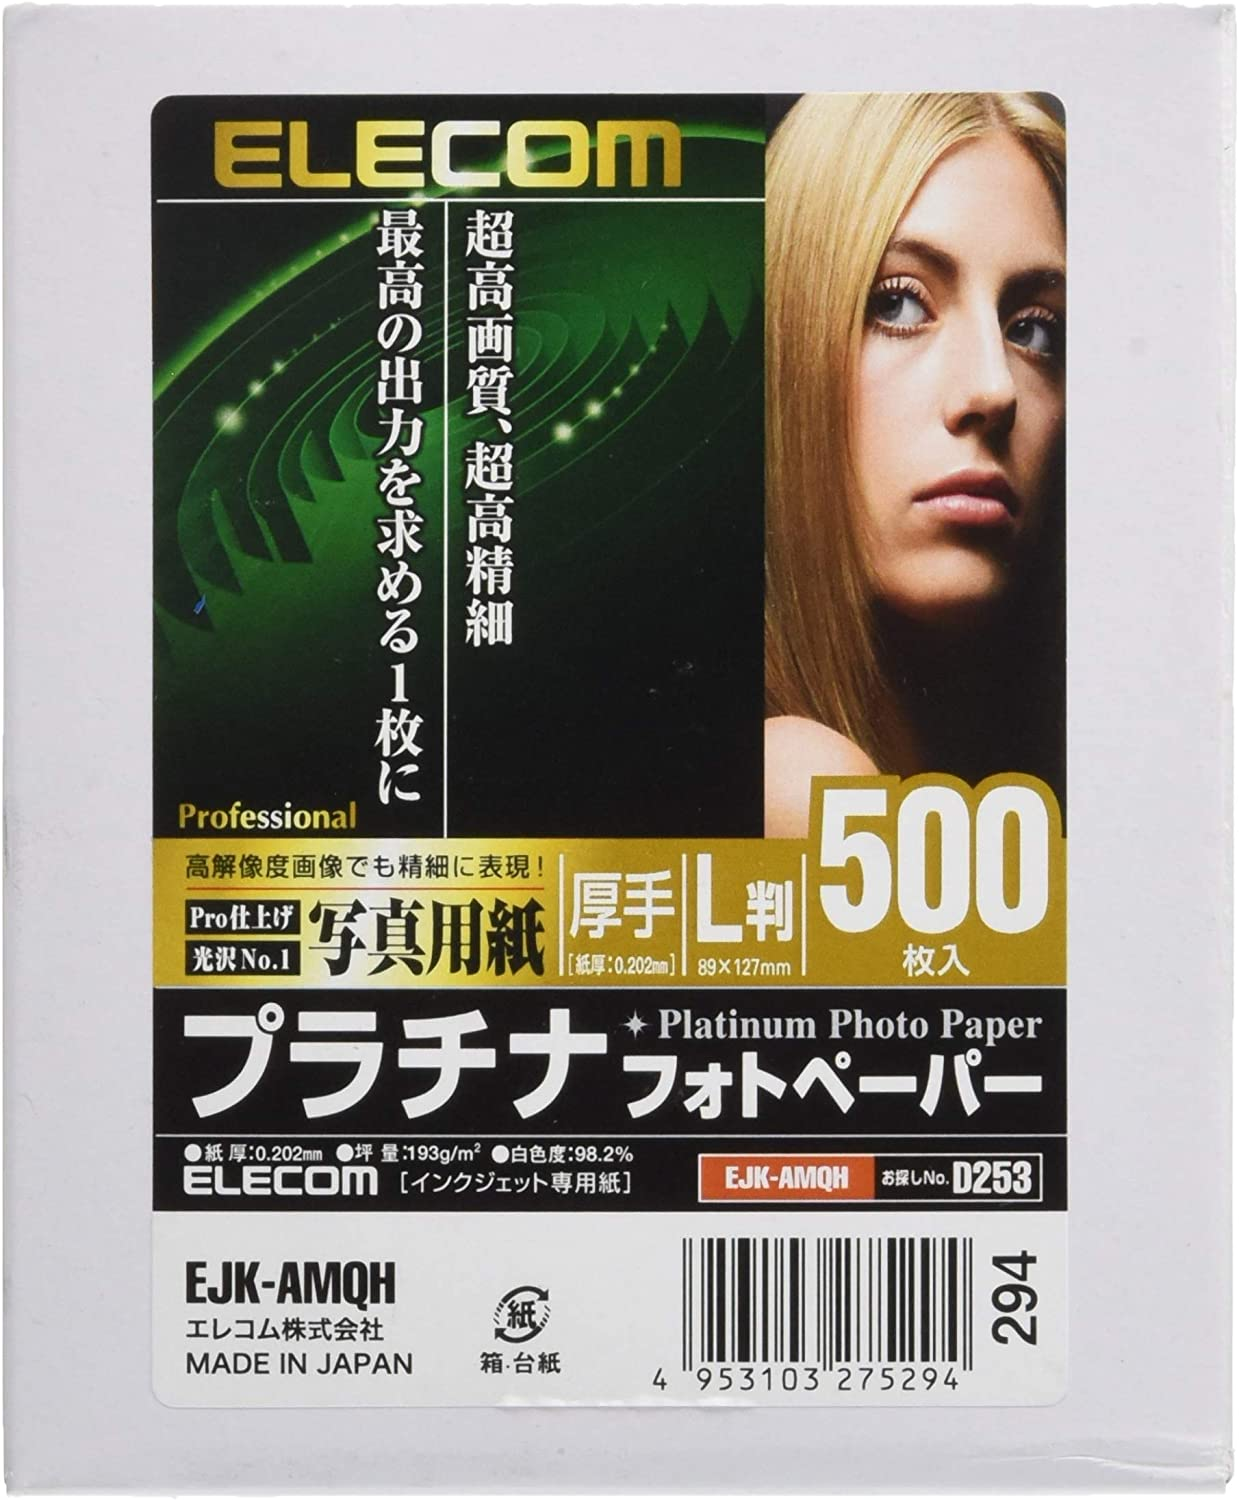 ELECOM New products world's highest quality popular Platinum photo paper standard L EJK All items free shipping sheets of version 500